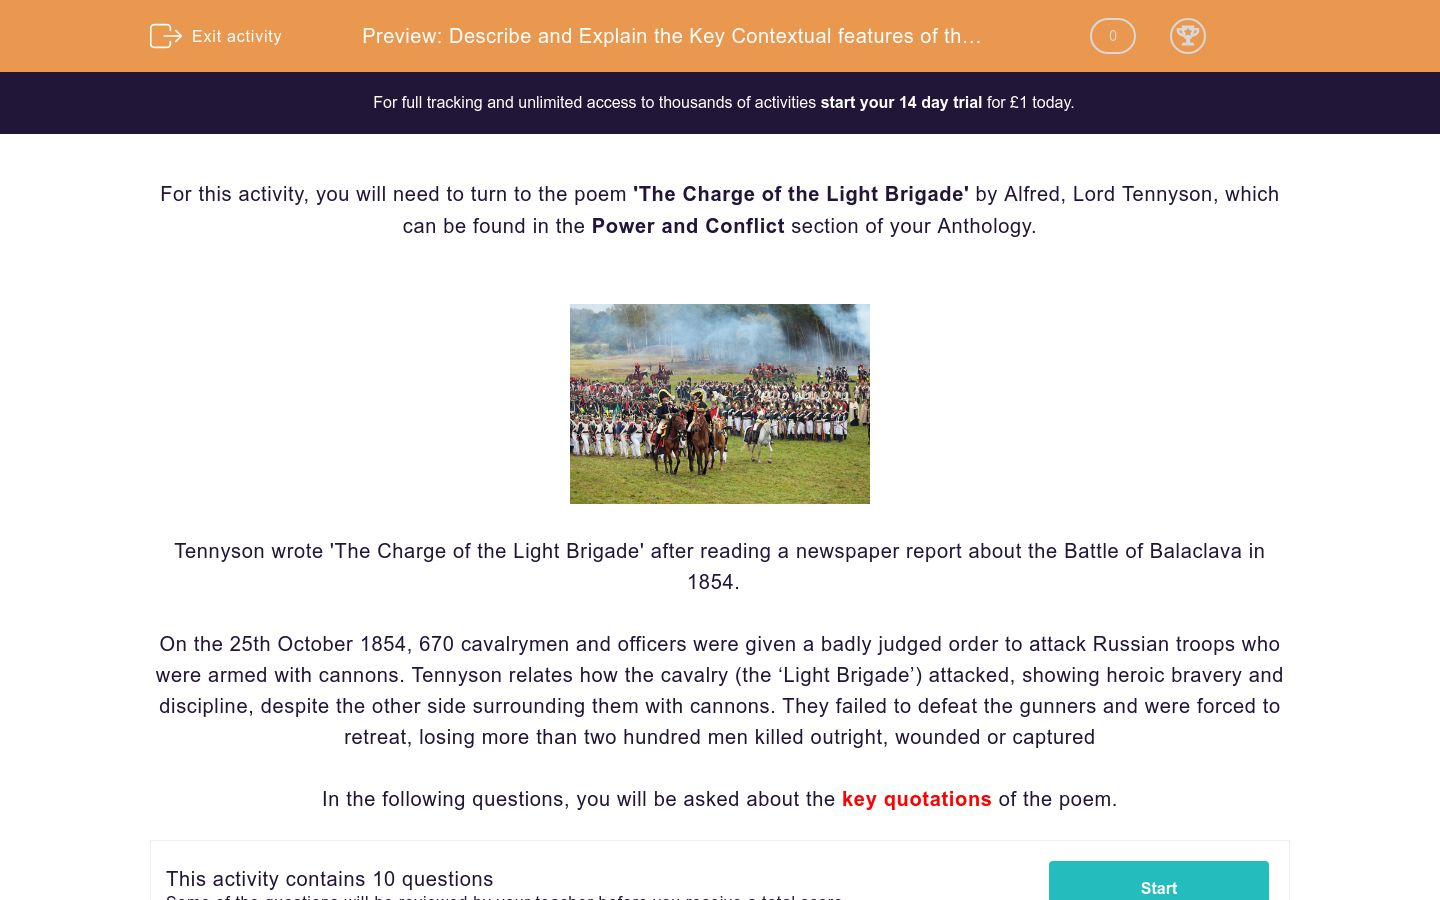 'Describe and Explain the Key Contextual features of the Poem 'The Charge of the Light Brigade' ' worksheet